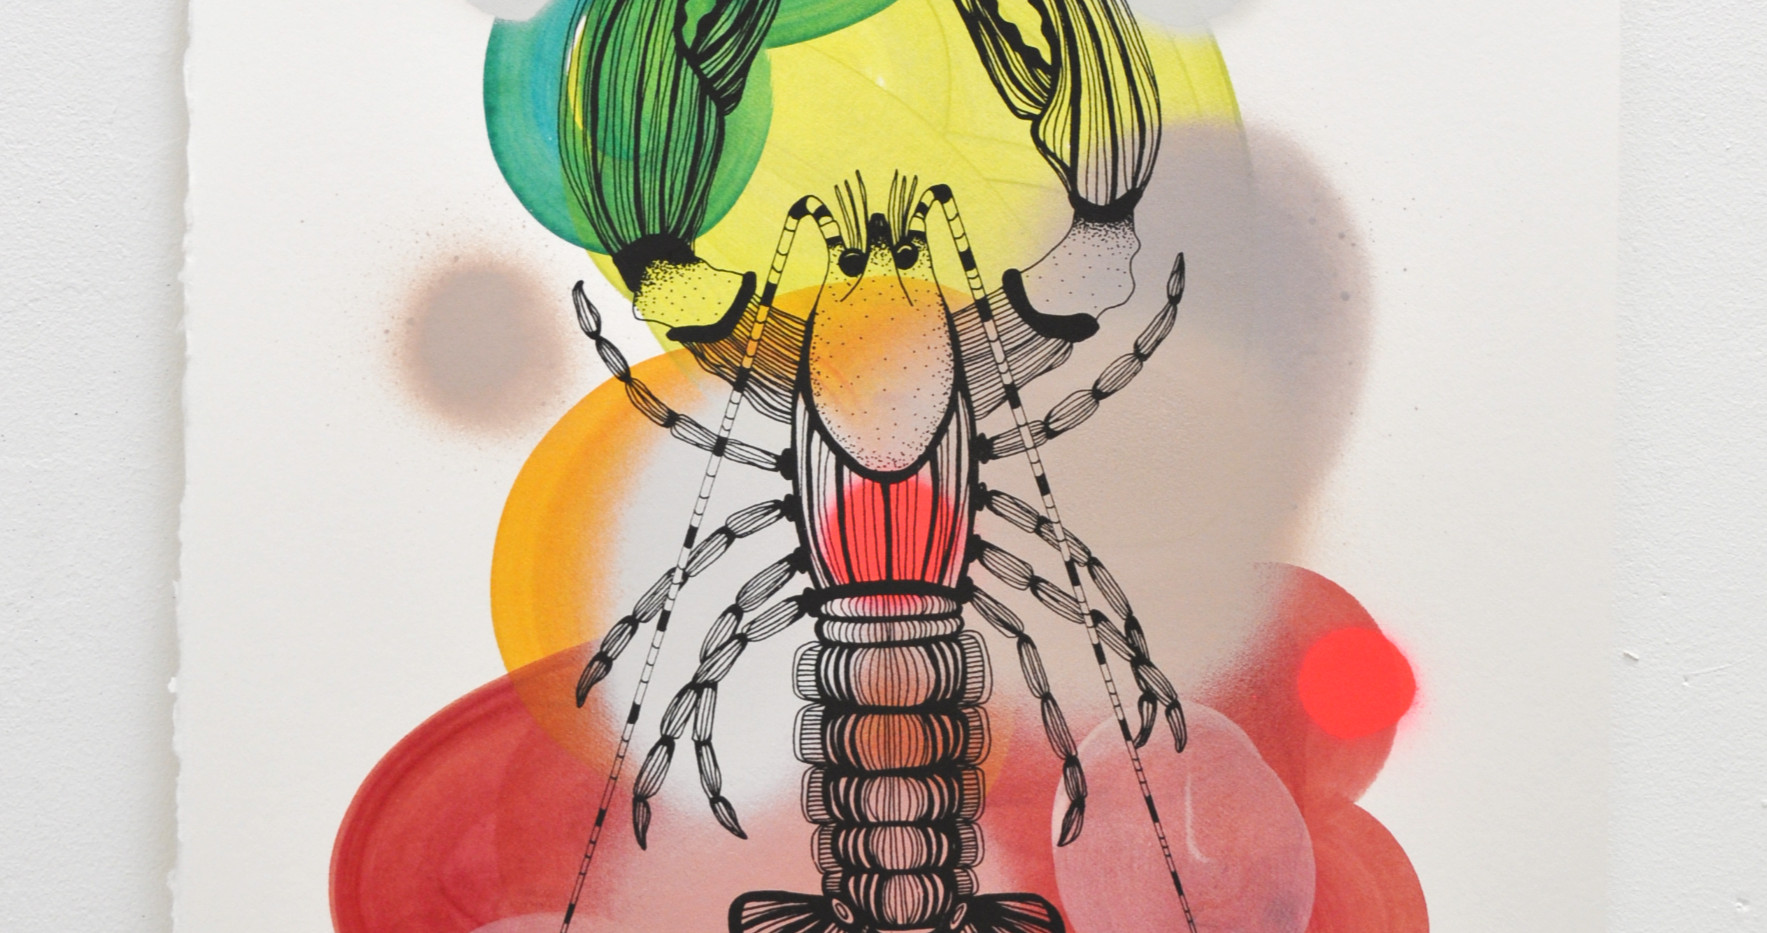 Cray edition no. 4 of 30, silk screen print on hand painted background, 50 x 35cm